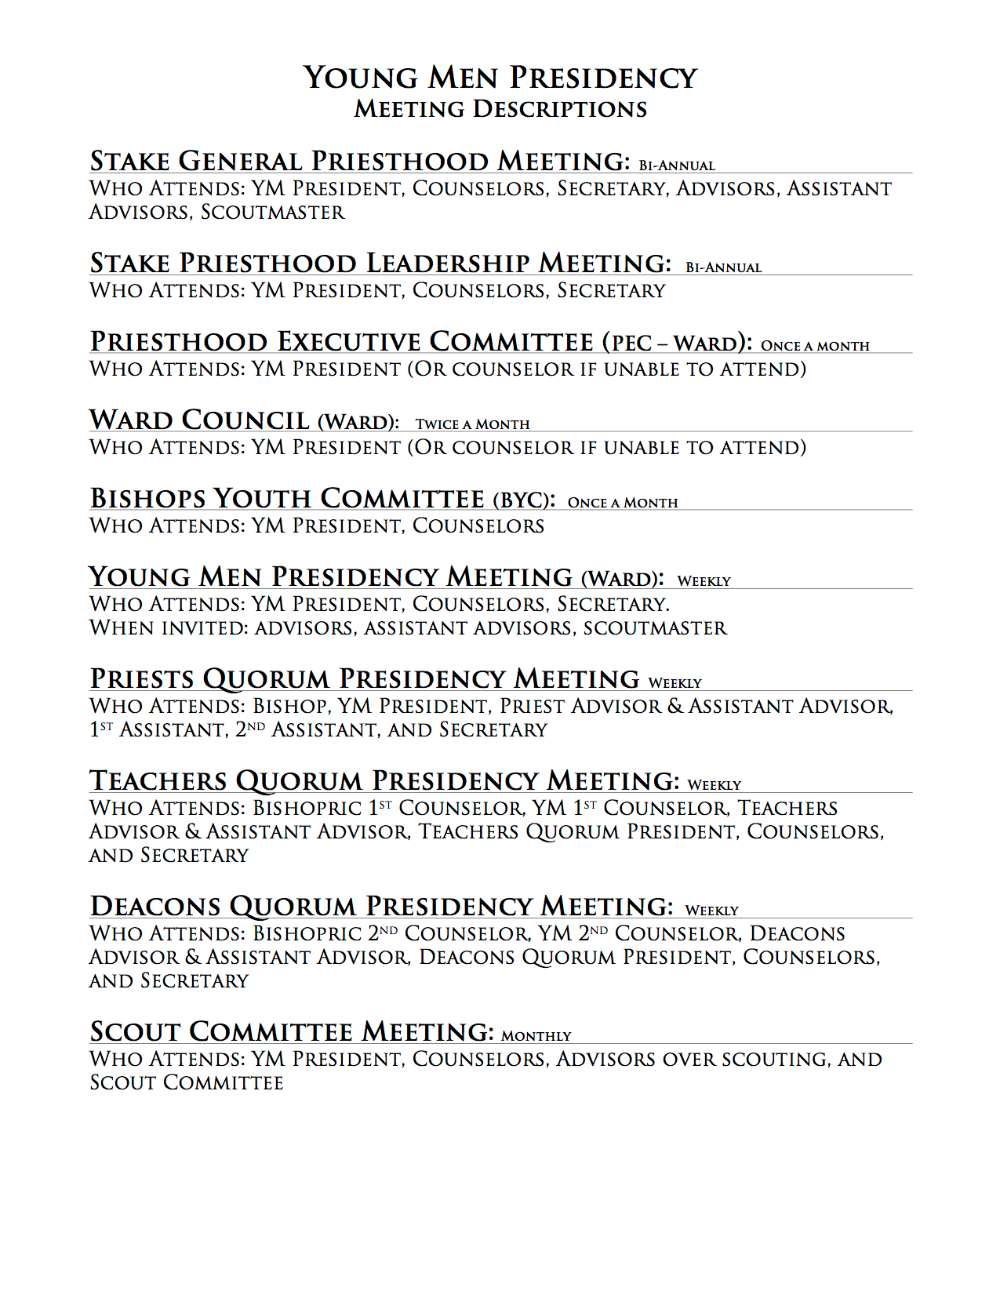 Ldstoolz young men list of meetings to attend fandeluxe Image collections